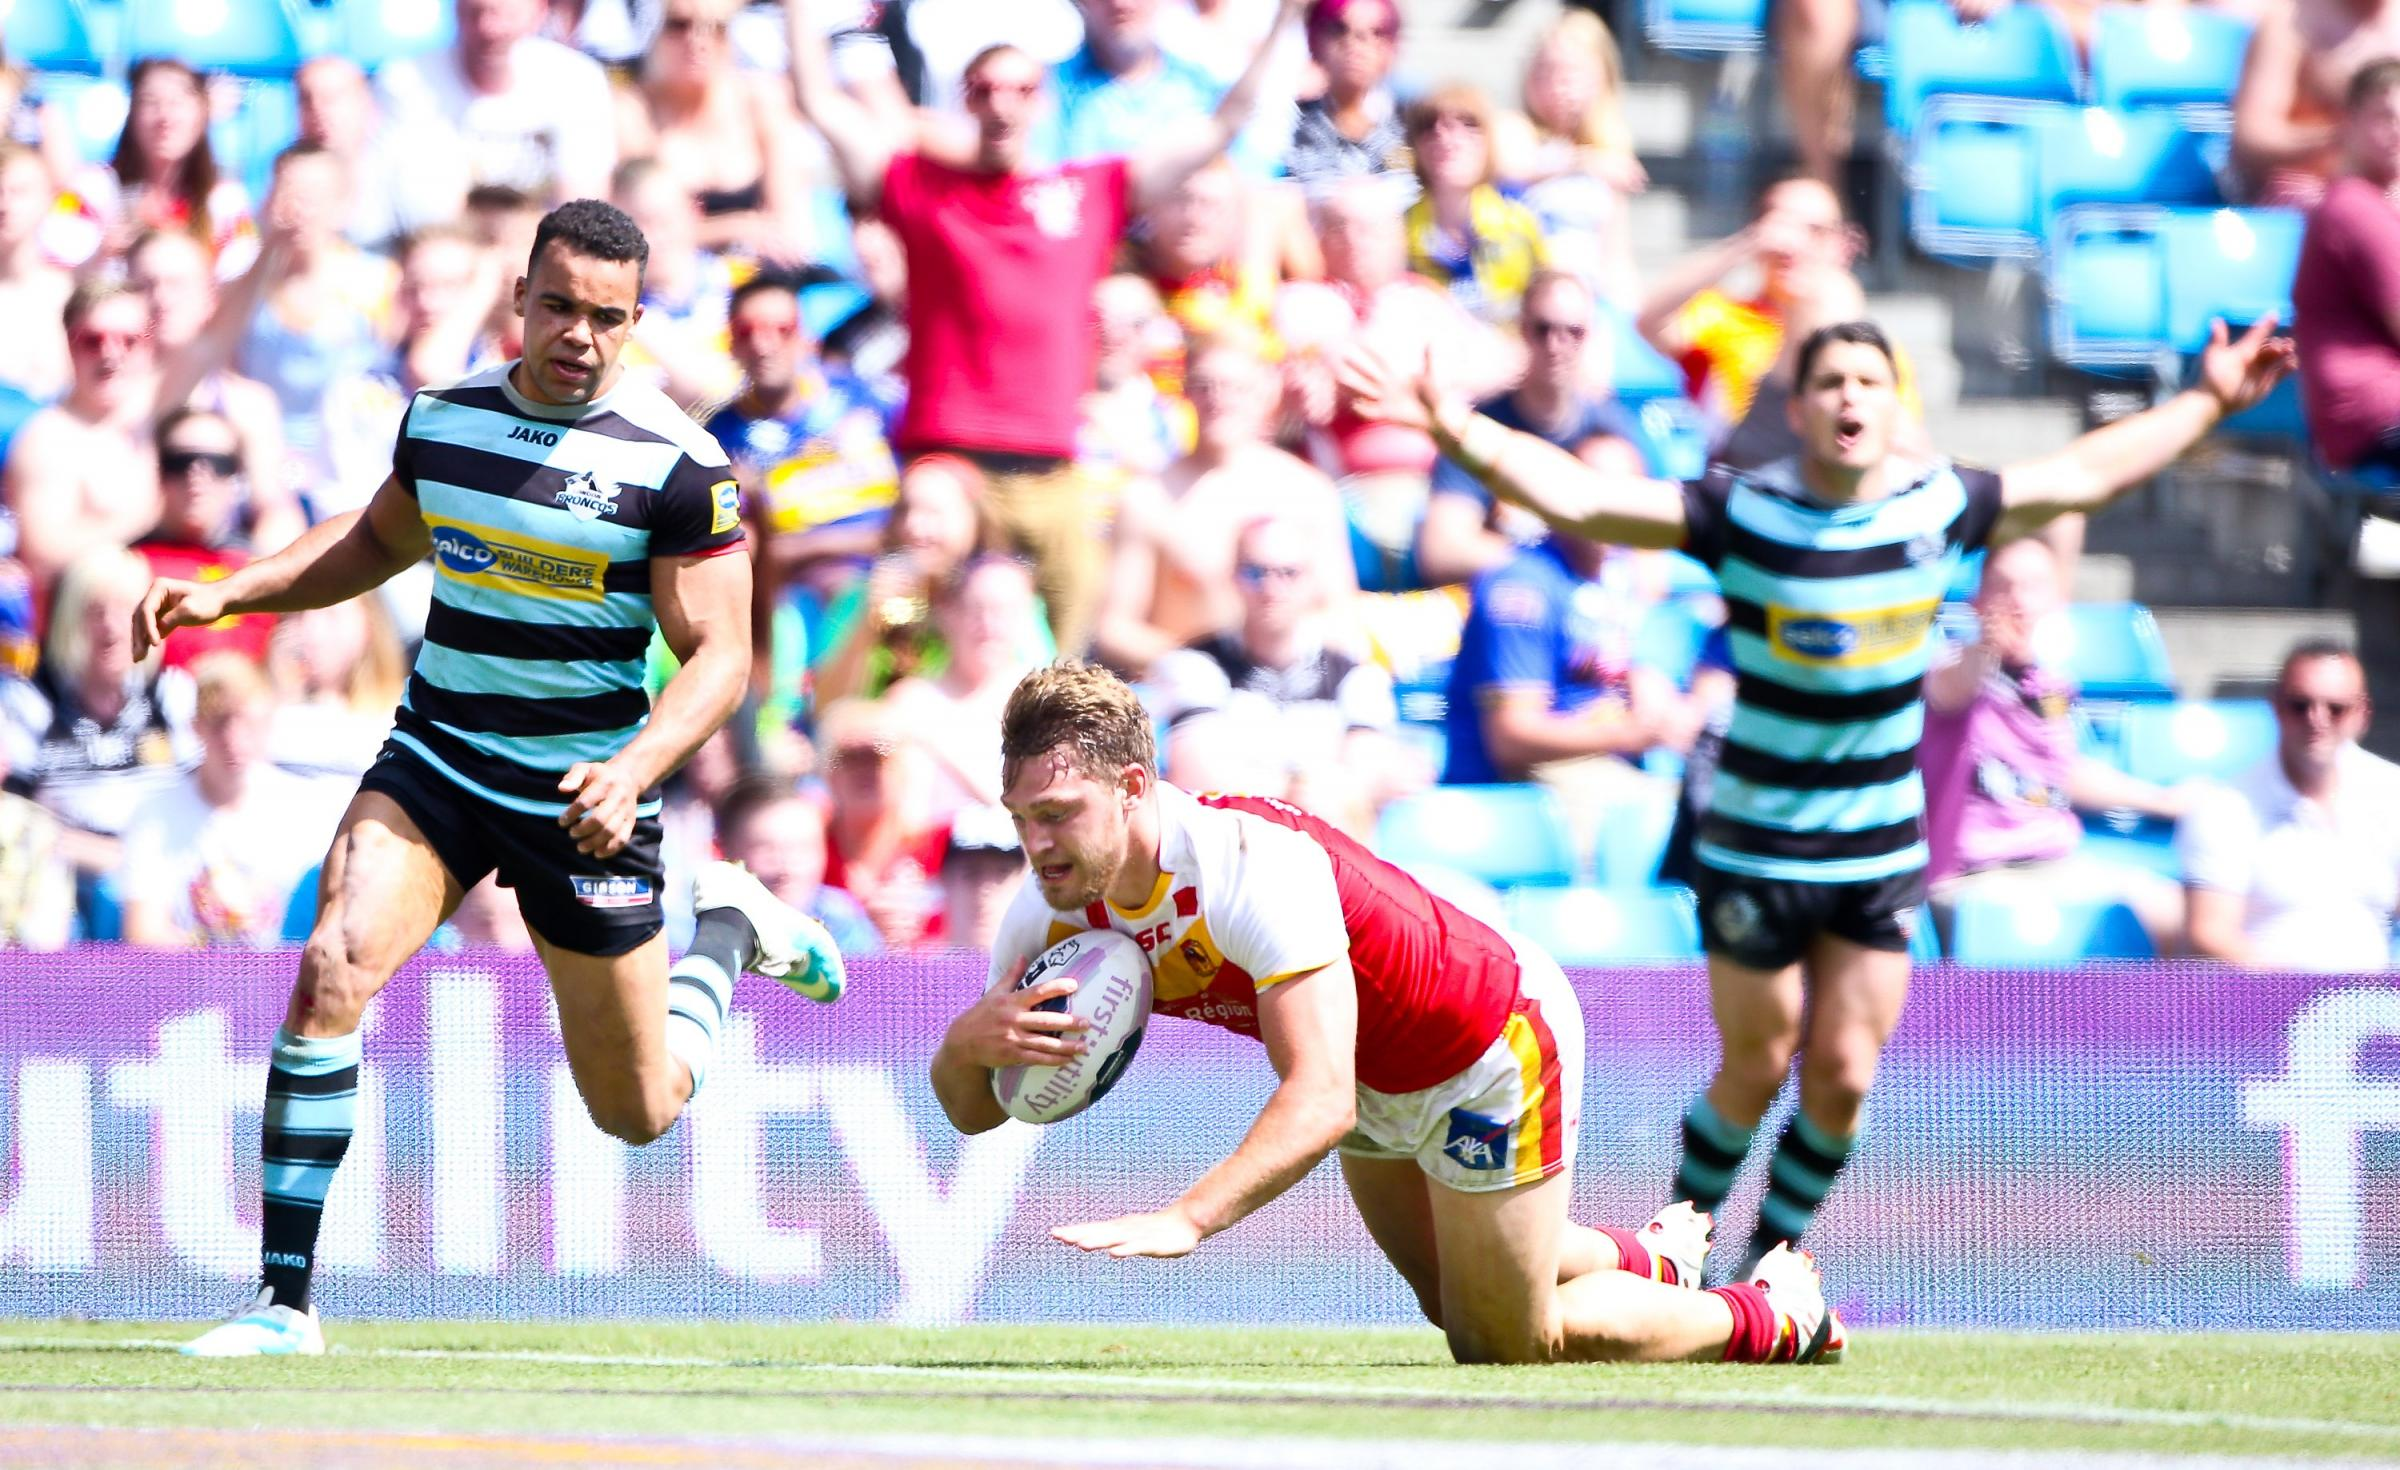 Former Bulls player Elliott Whitehead scores for Catalan against London in their Magic Weekend match